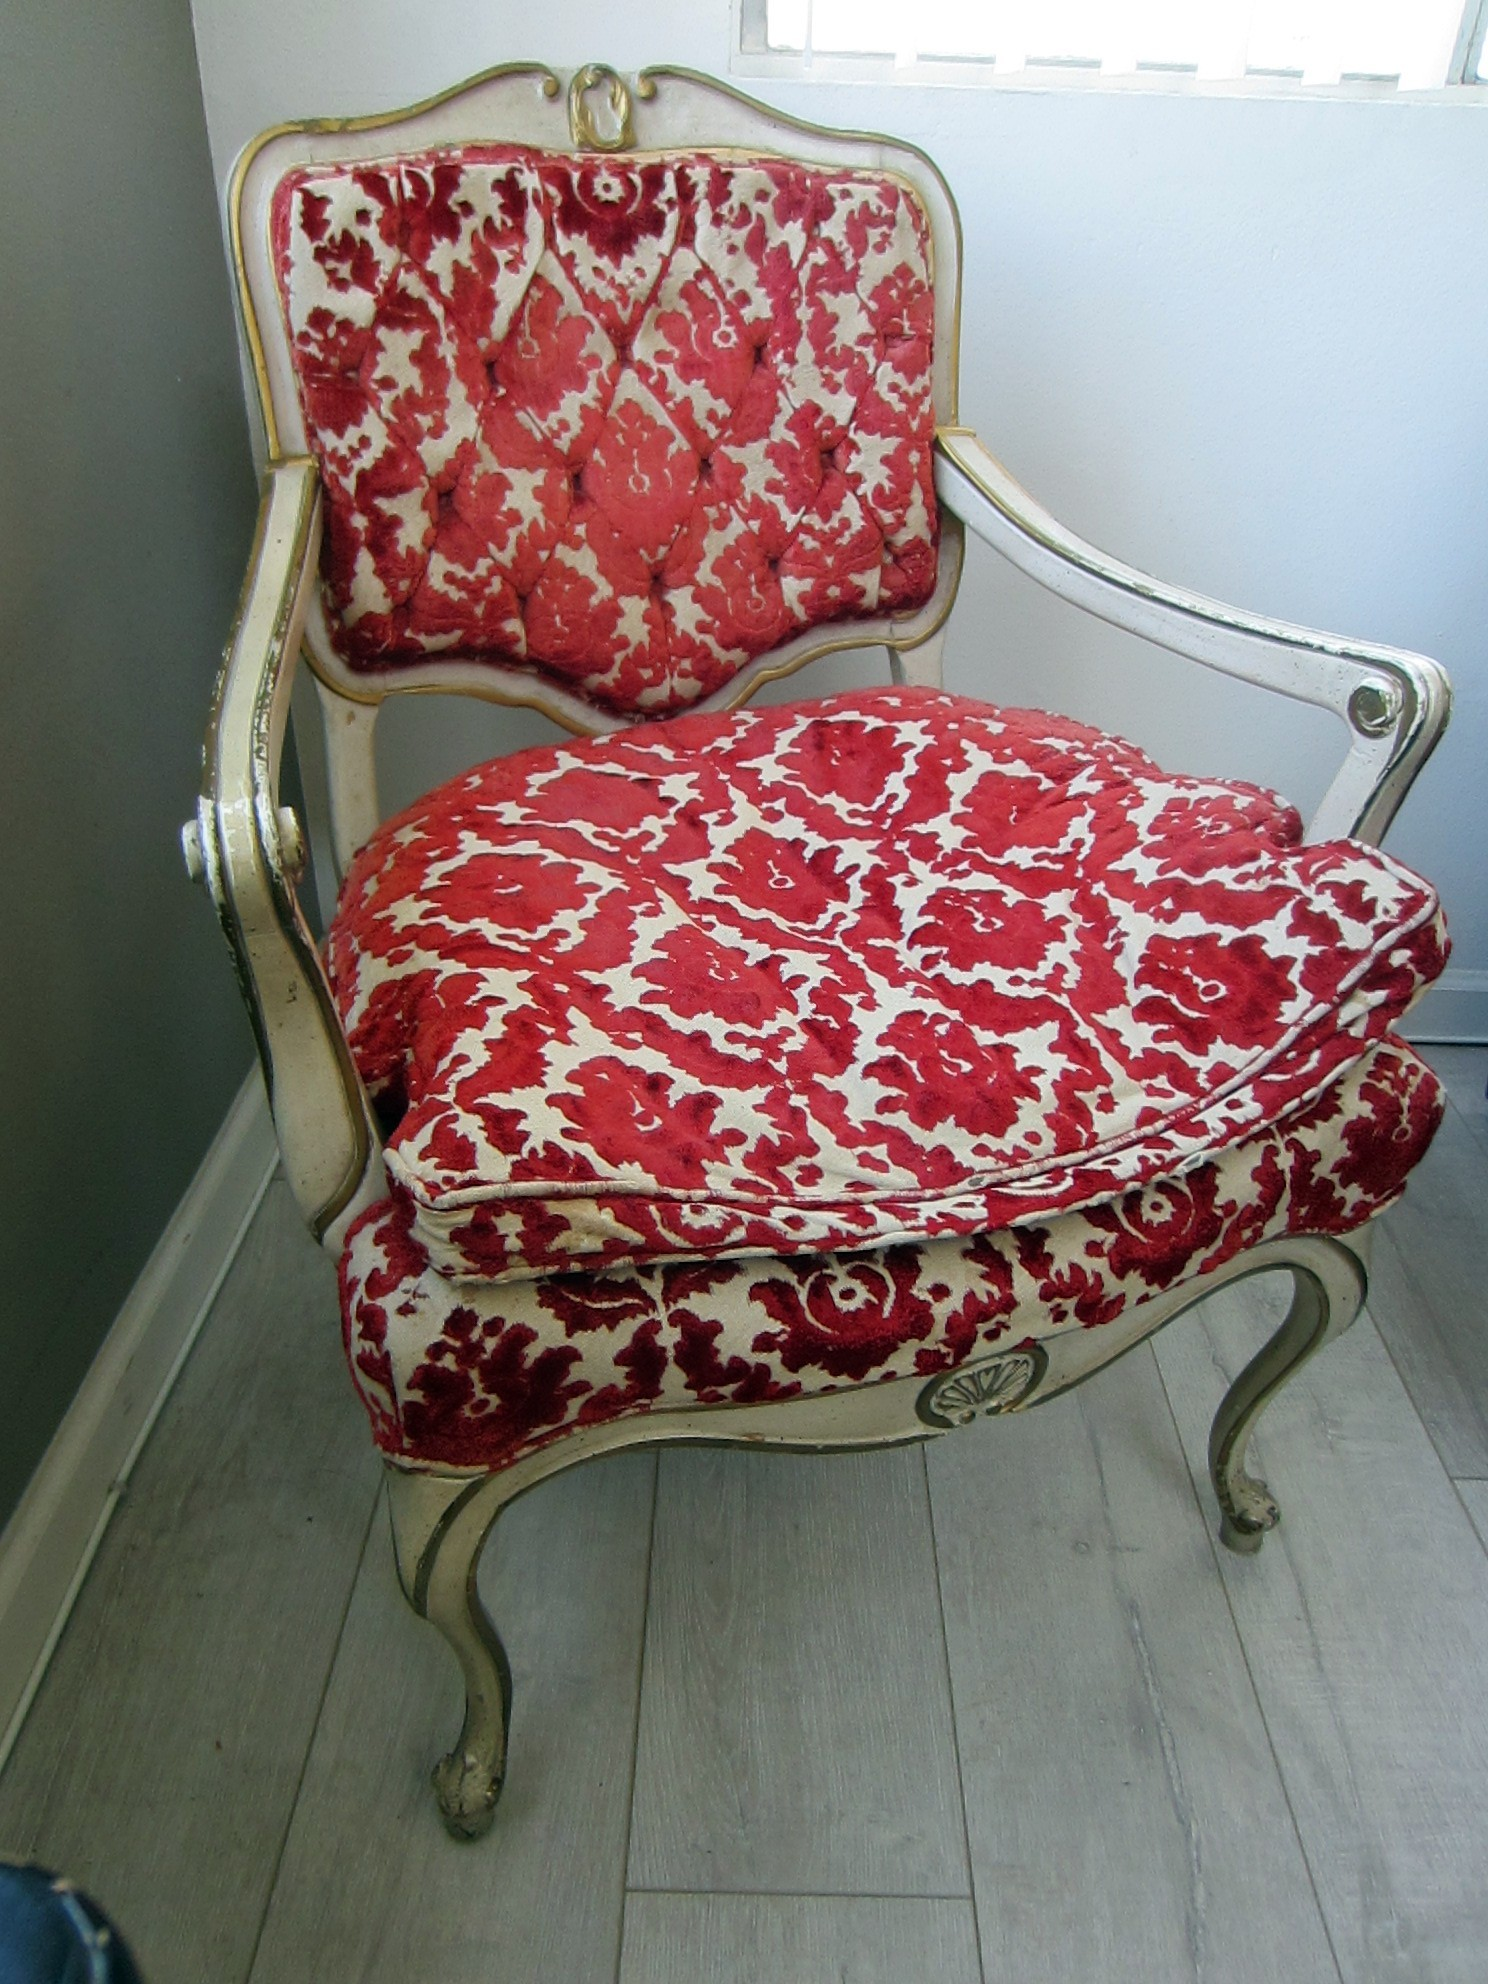 white chairs for sale grain sack chair french hibriten arm red floral textile gold